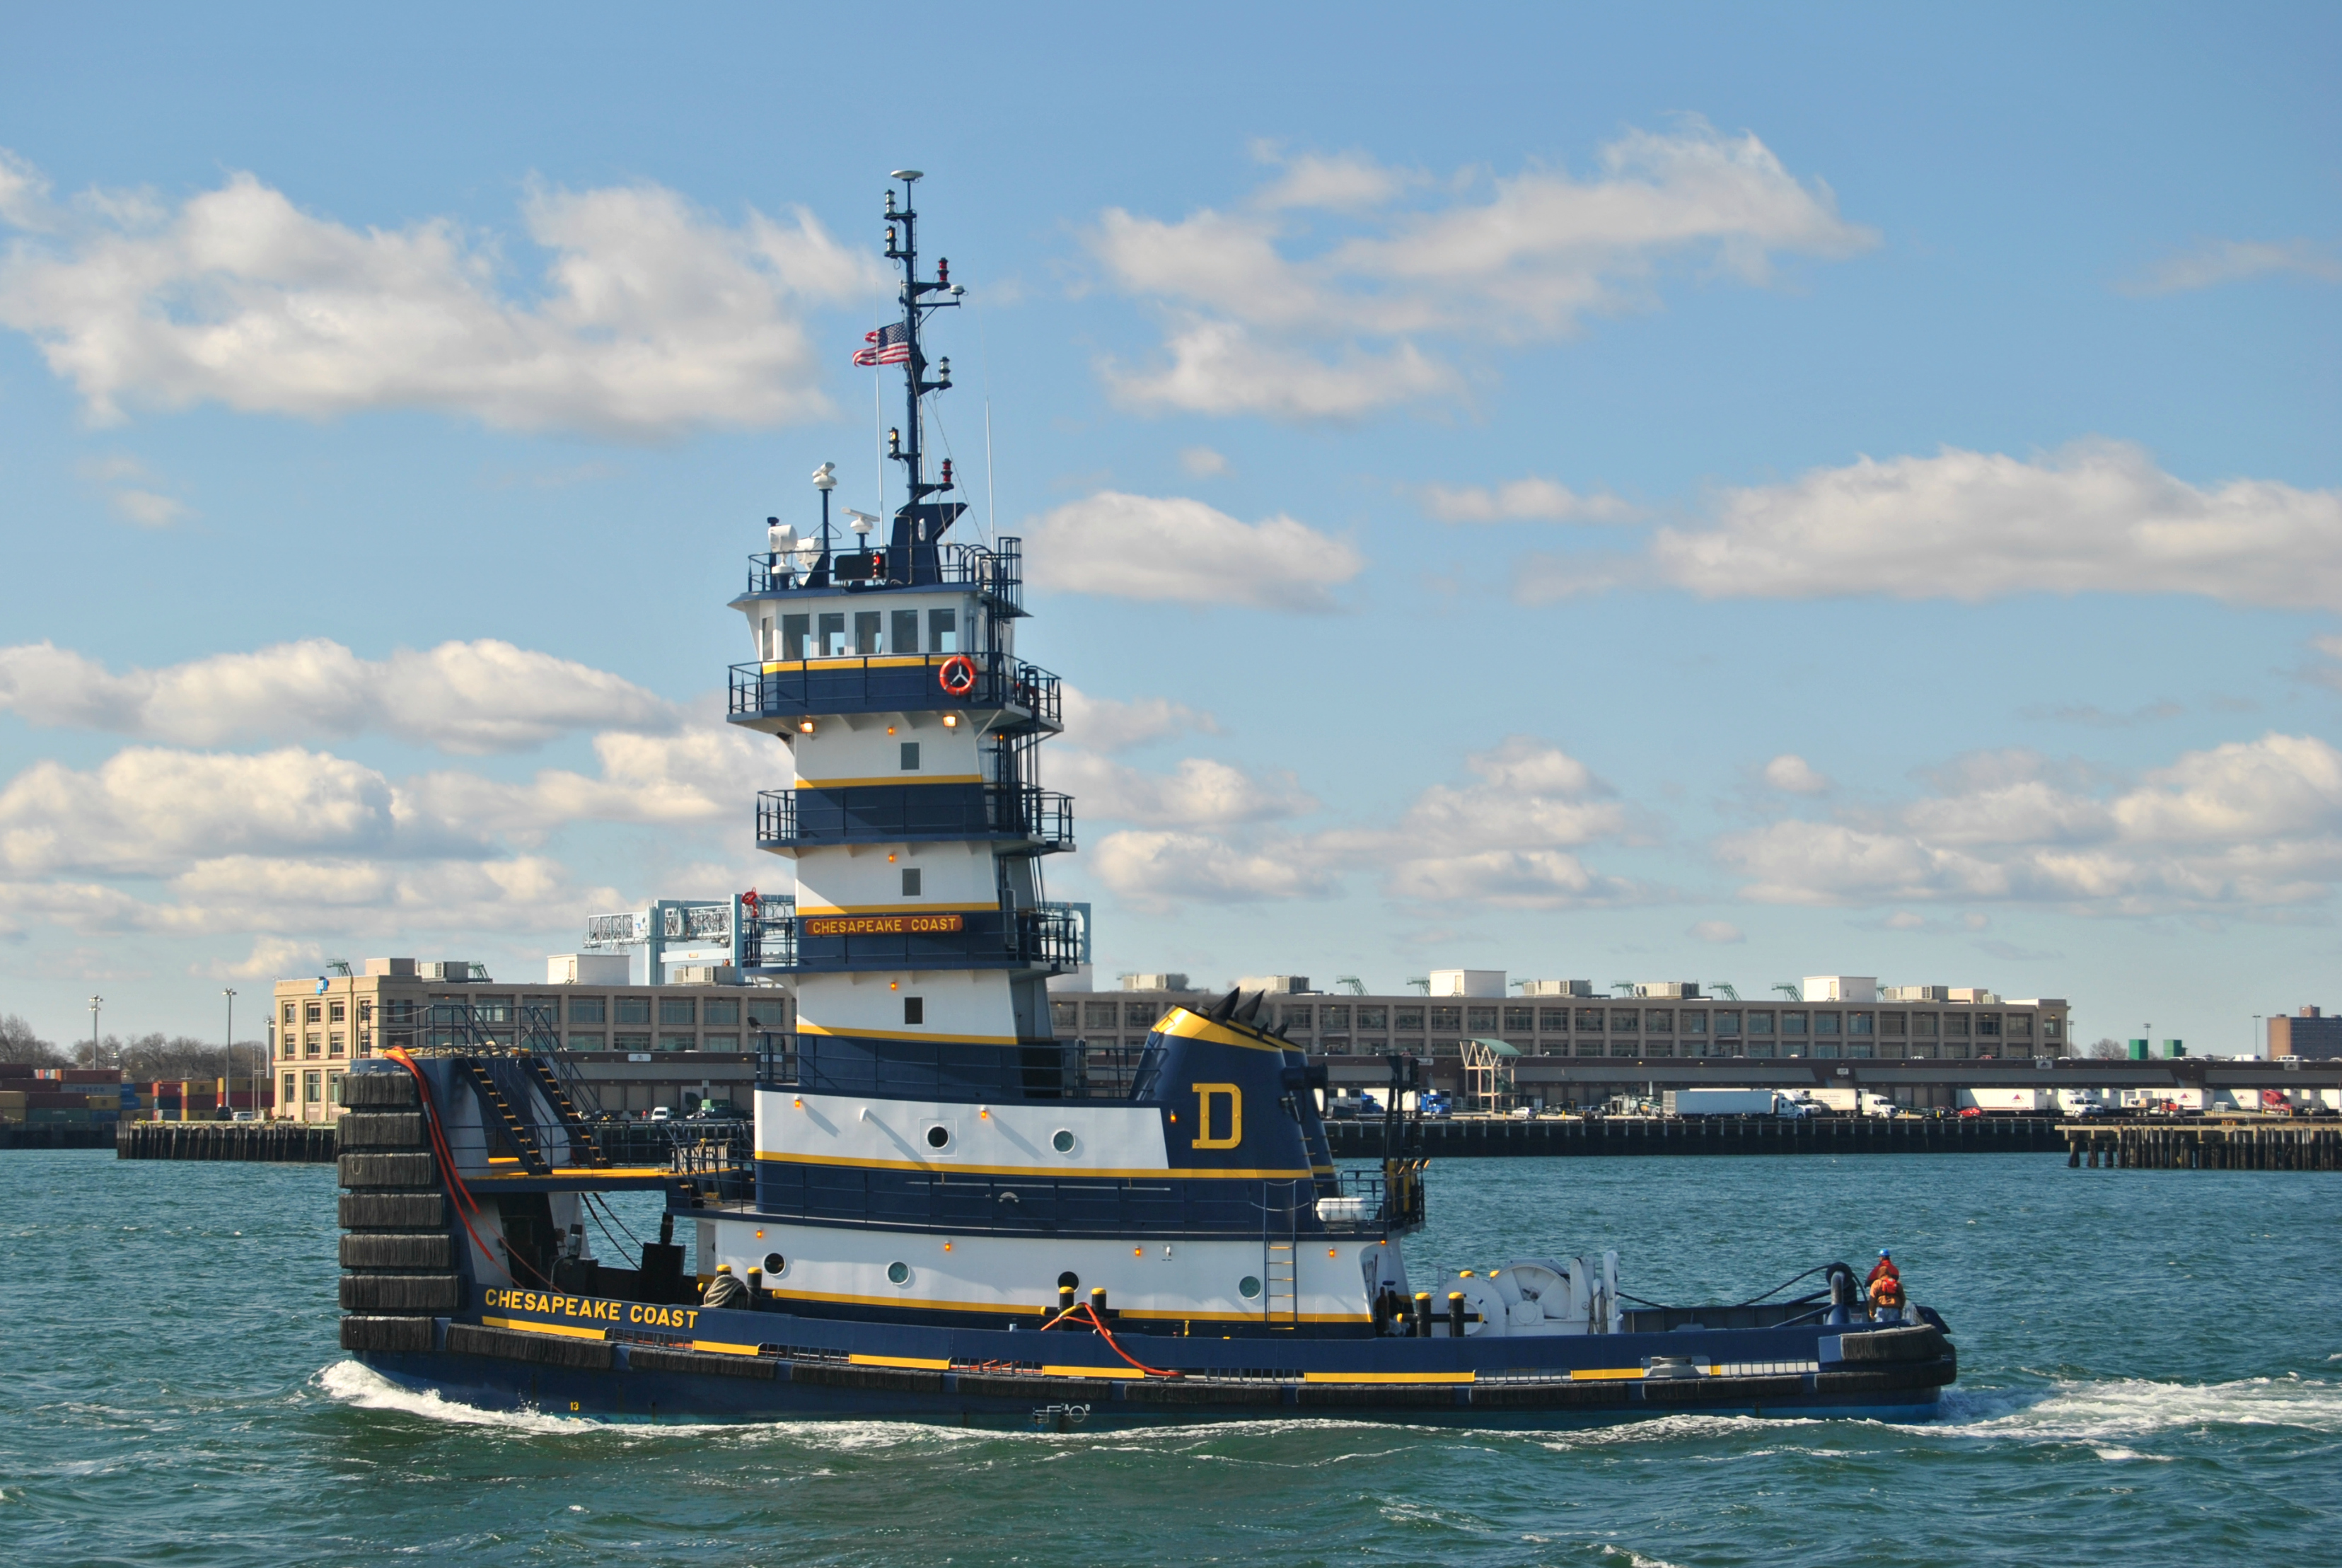 Water In Engine >> Chesapeake Coast Tugboat @ Boston MA Harbour | Official Numb… | Flickr - Photo Sharing!